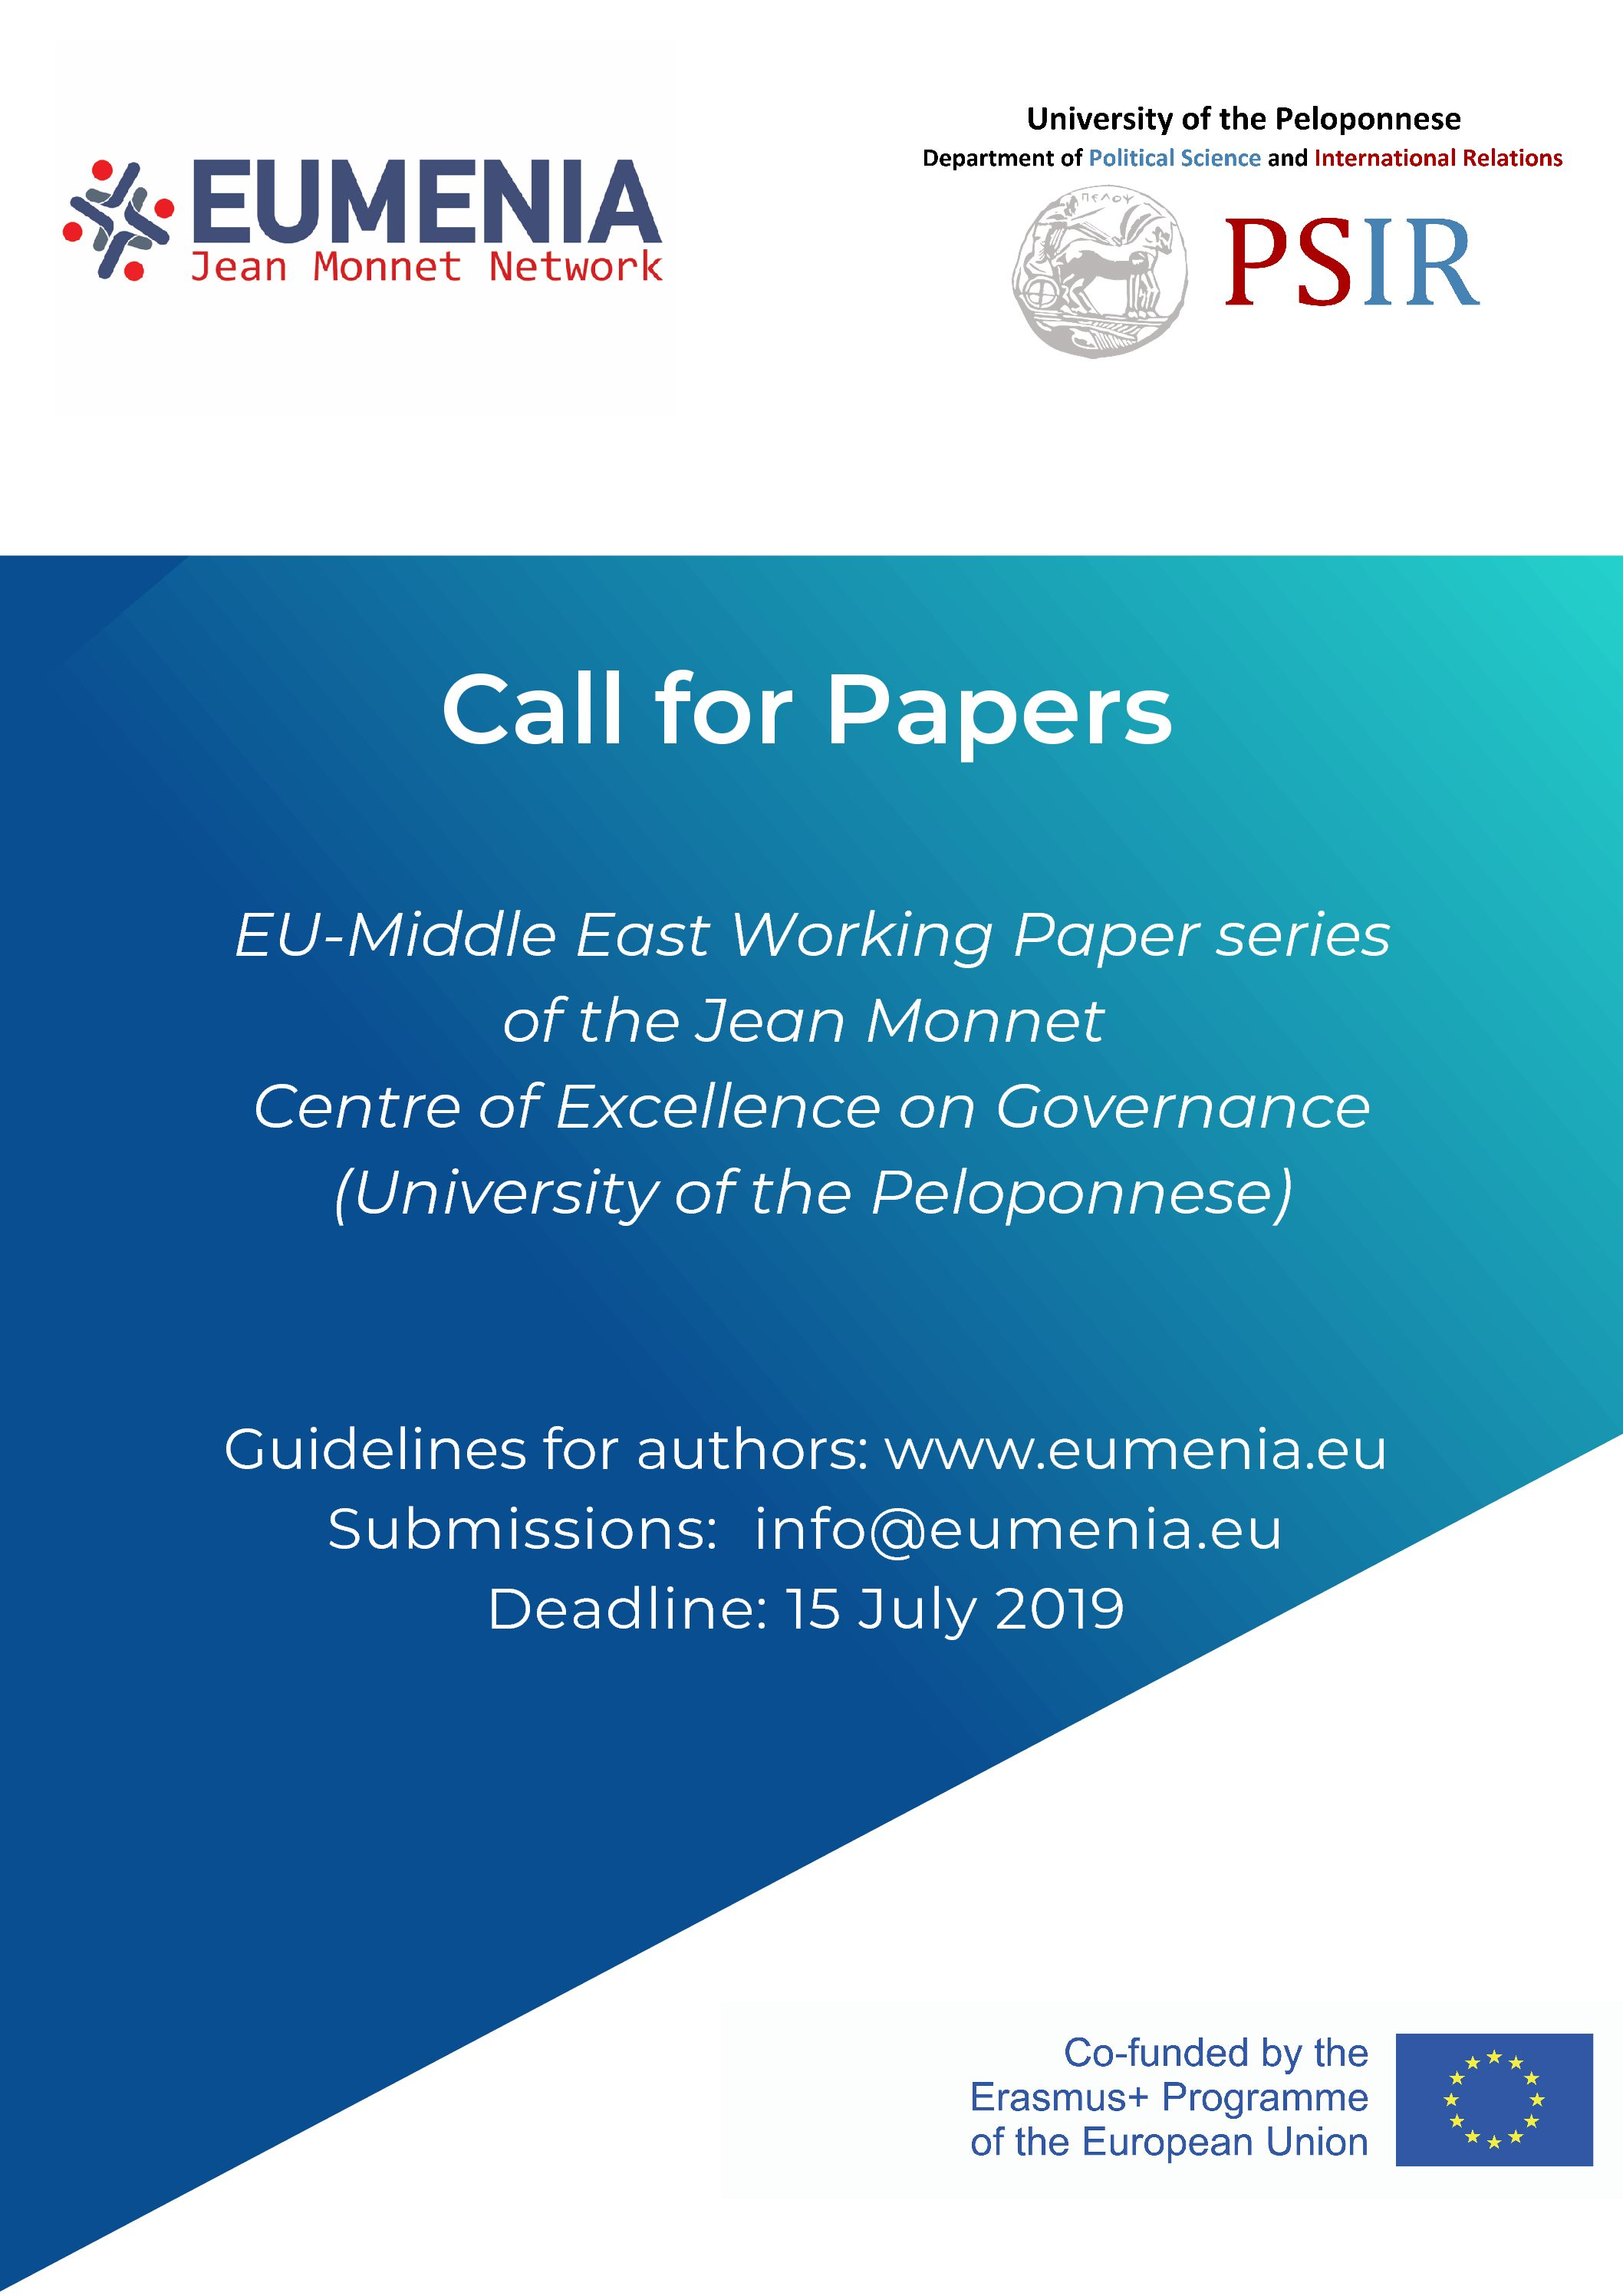 Call for Papers – EU-Middle East Working Paper Series